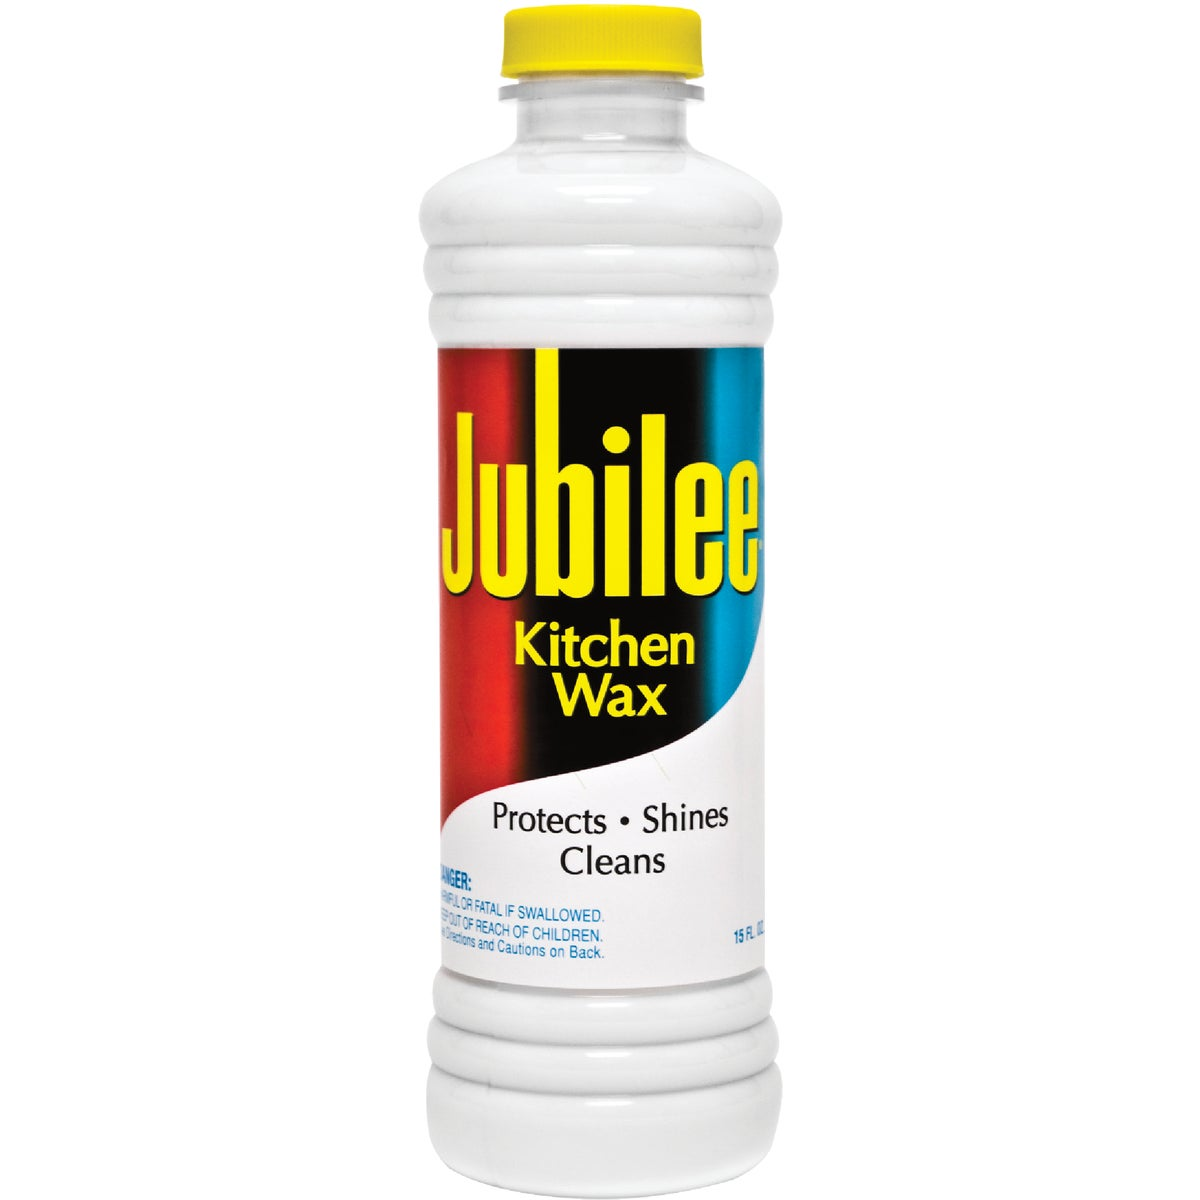 JUBILEE KITCHEN WAX - 524815 by Malco Products Inc